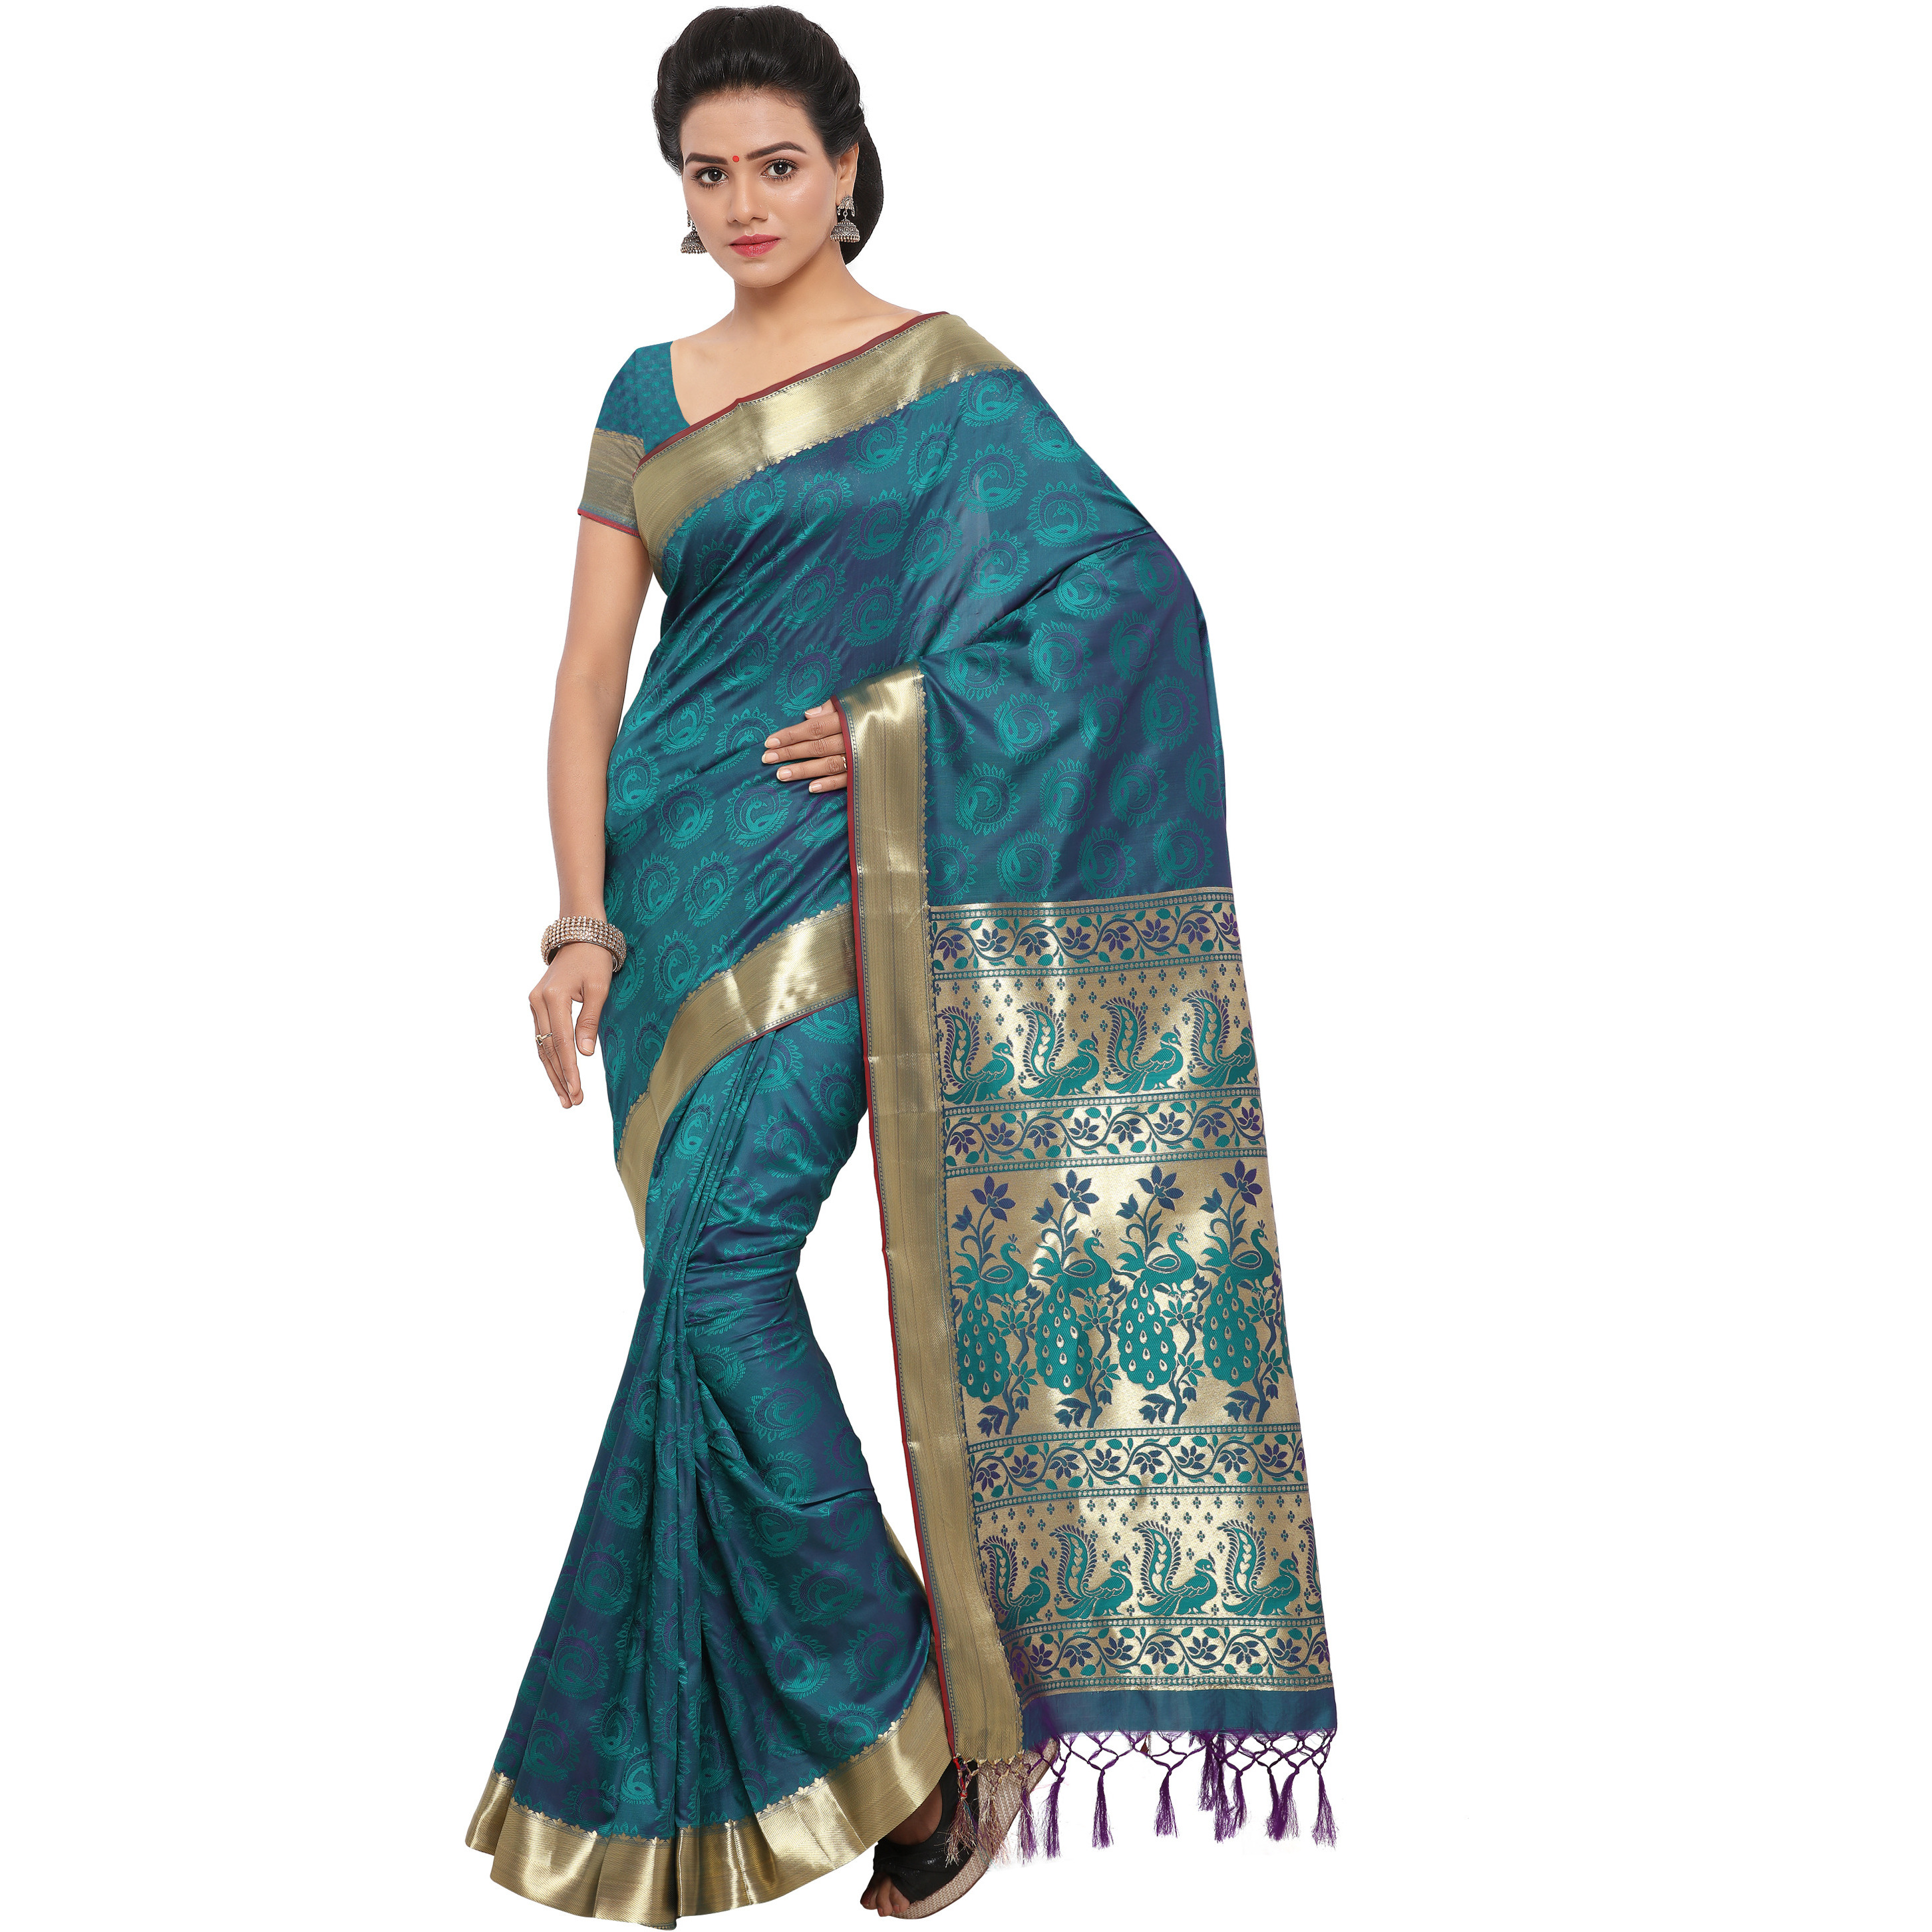 Varkala Silk Sarees Women's Art Silk Kanjeevaram Saree with Blouse Piece (AWJP8116RMV_Teal Blue_Freesize)